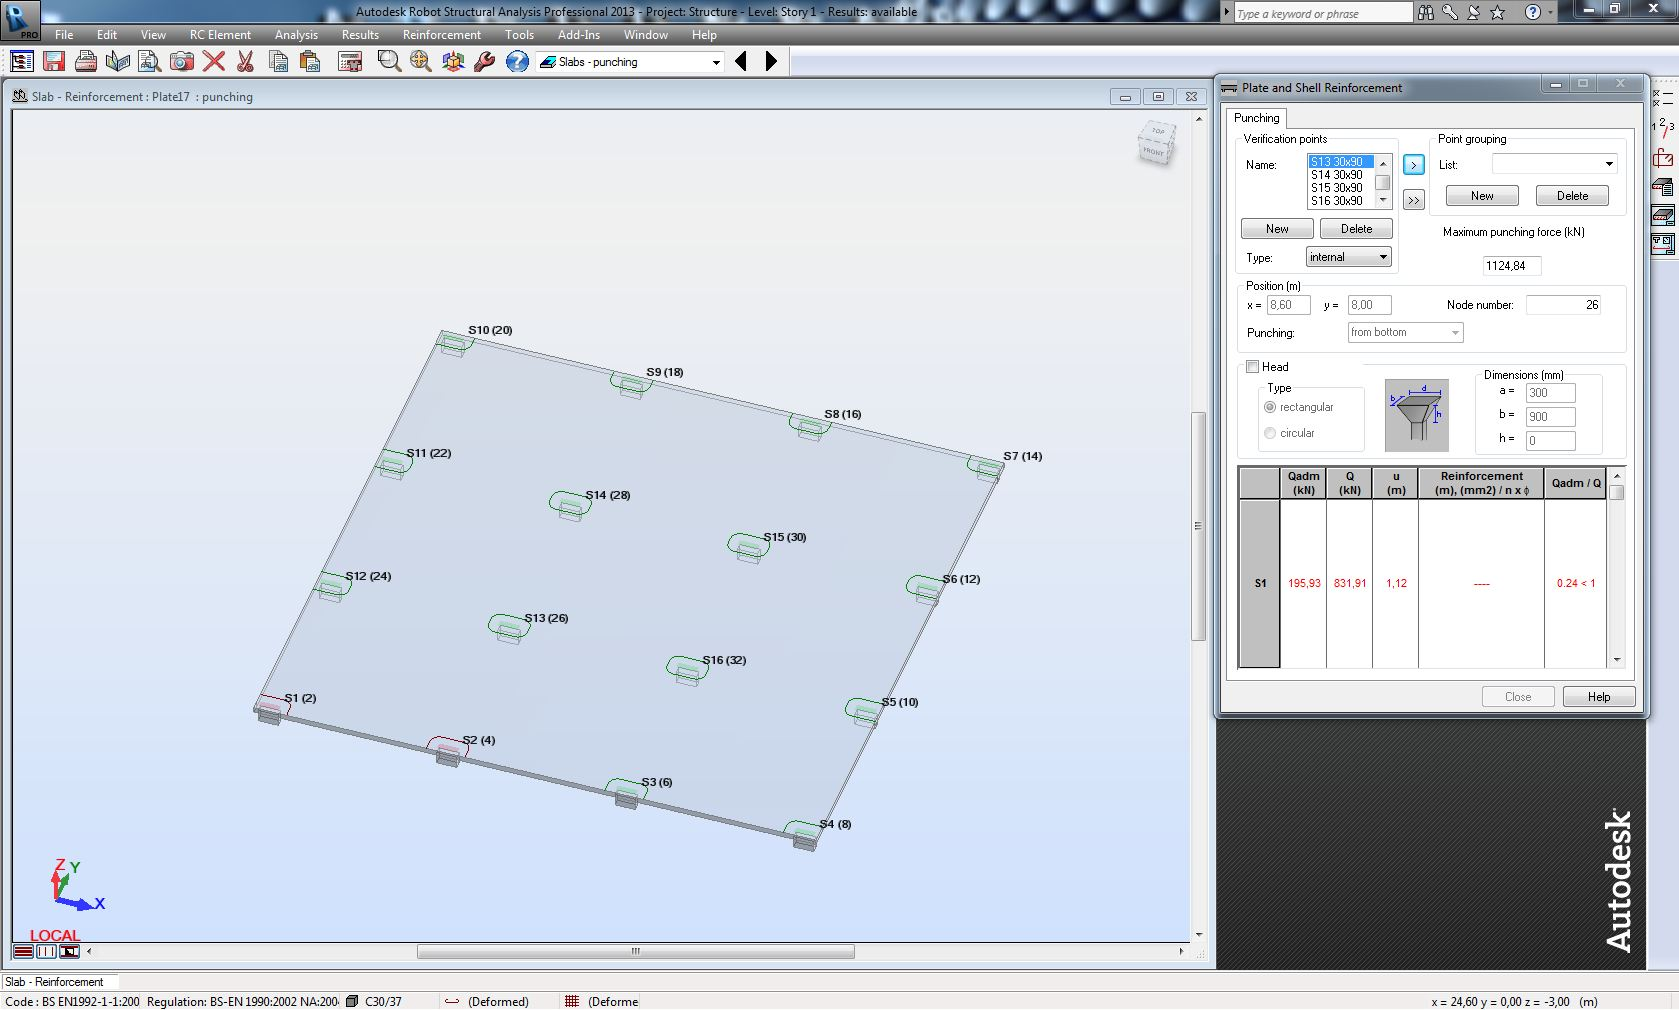 Punching Shear Capacity Ratio Autodesk Community Diagram Calculator This Information Is Available In The Table And Calculation Note But Not Displayed Directly On Viewer Where Locations With Ration Above 1 Are